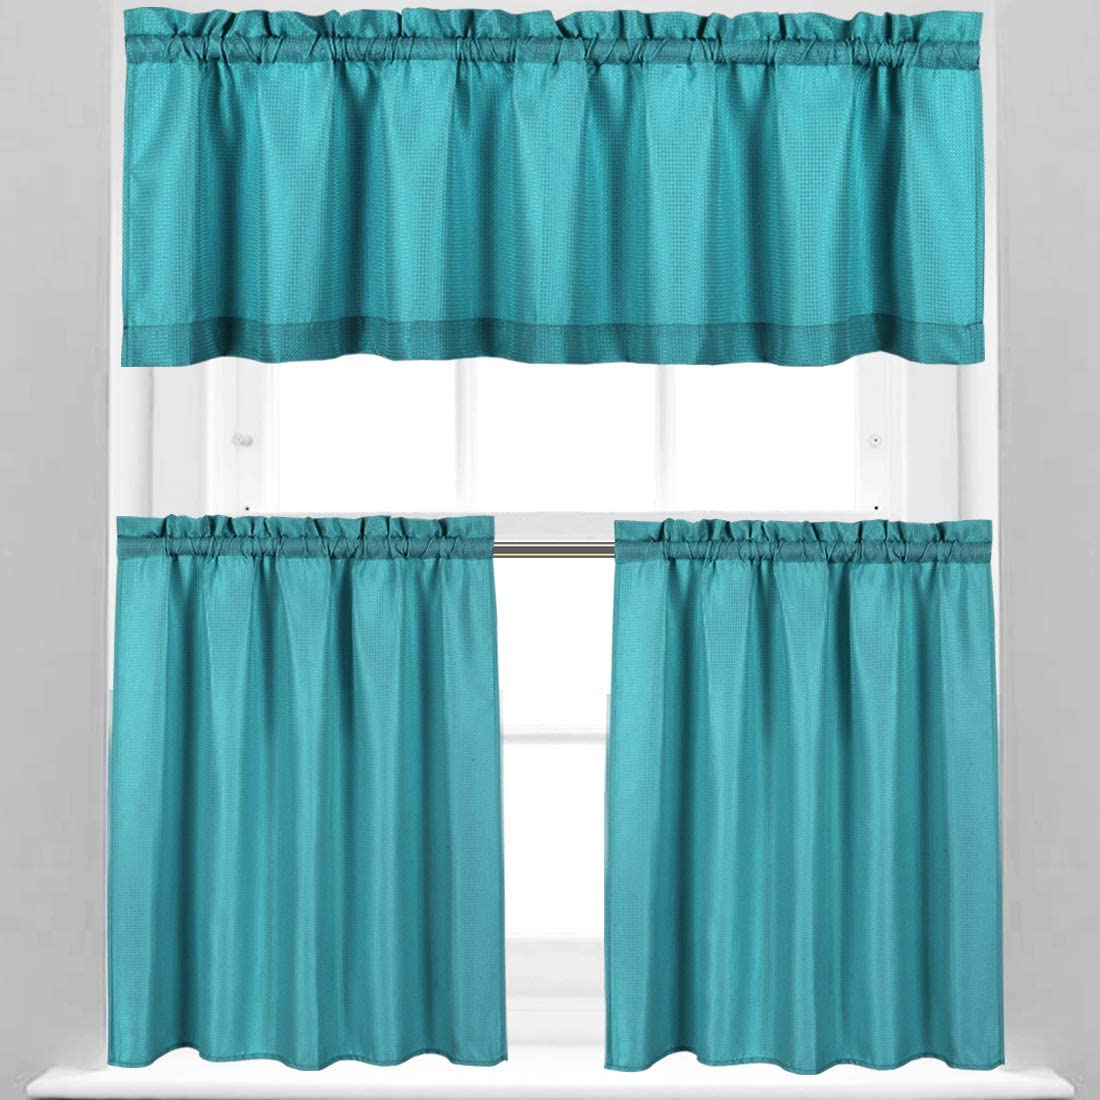 Valea Home Waterproof Kitchen Curtains Set for Bathroom Window, Turquoise, Valance + Tiers 24 inch Length